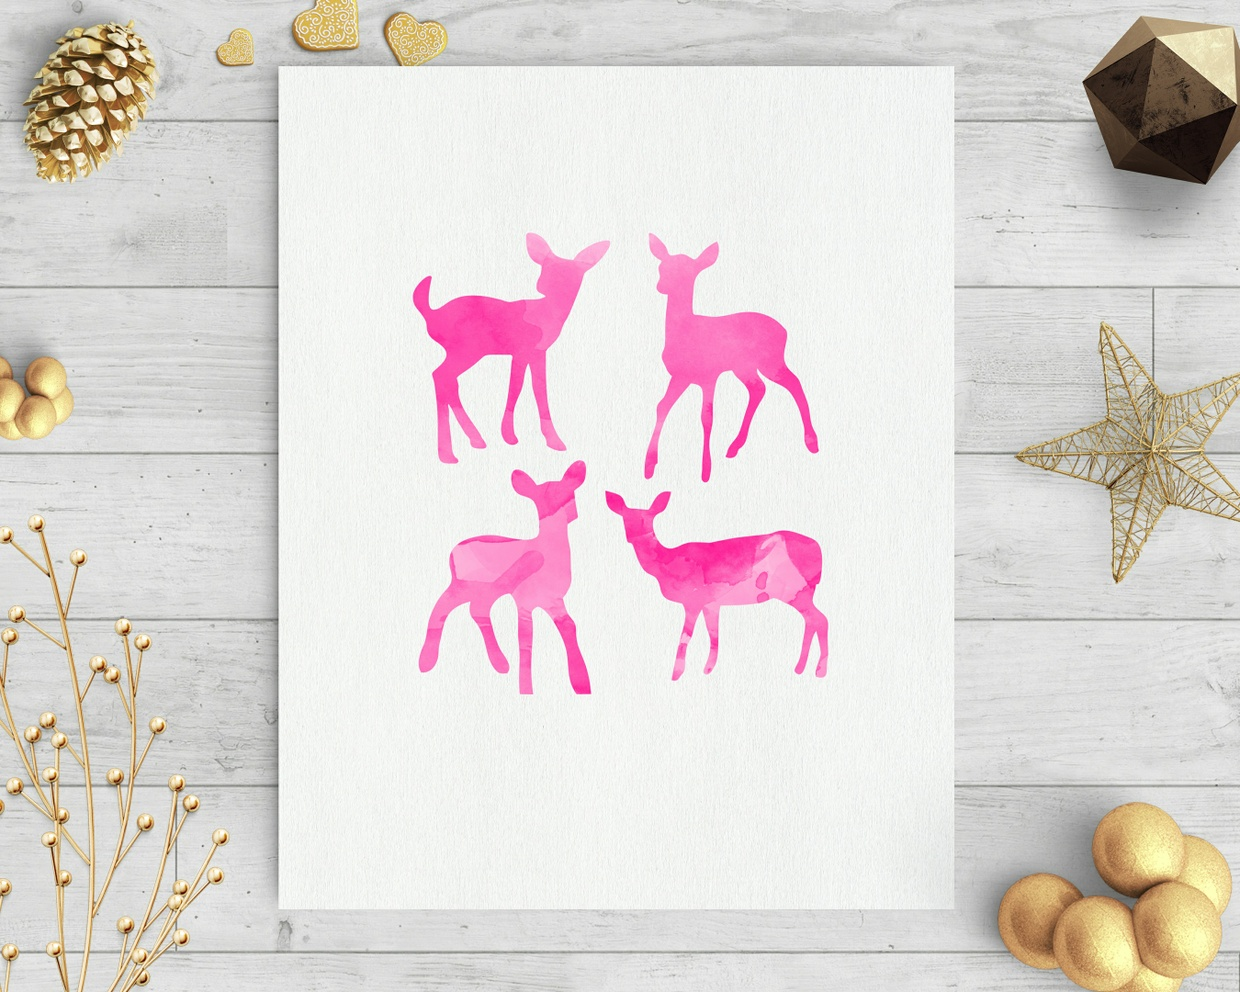 baby deer pink watercolor clip art svg dxf cut file silhouette cameo cricut download